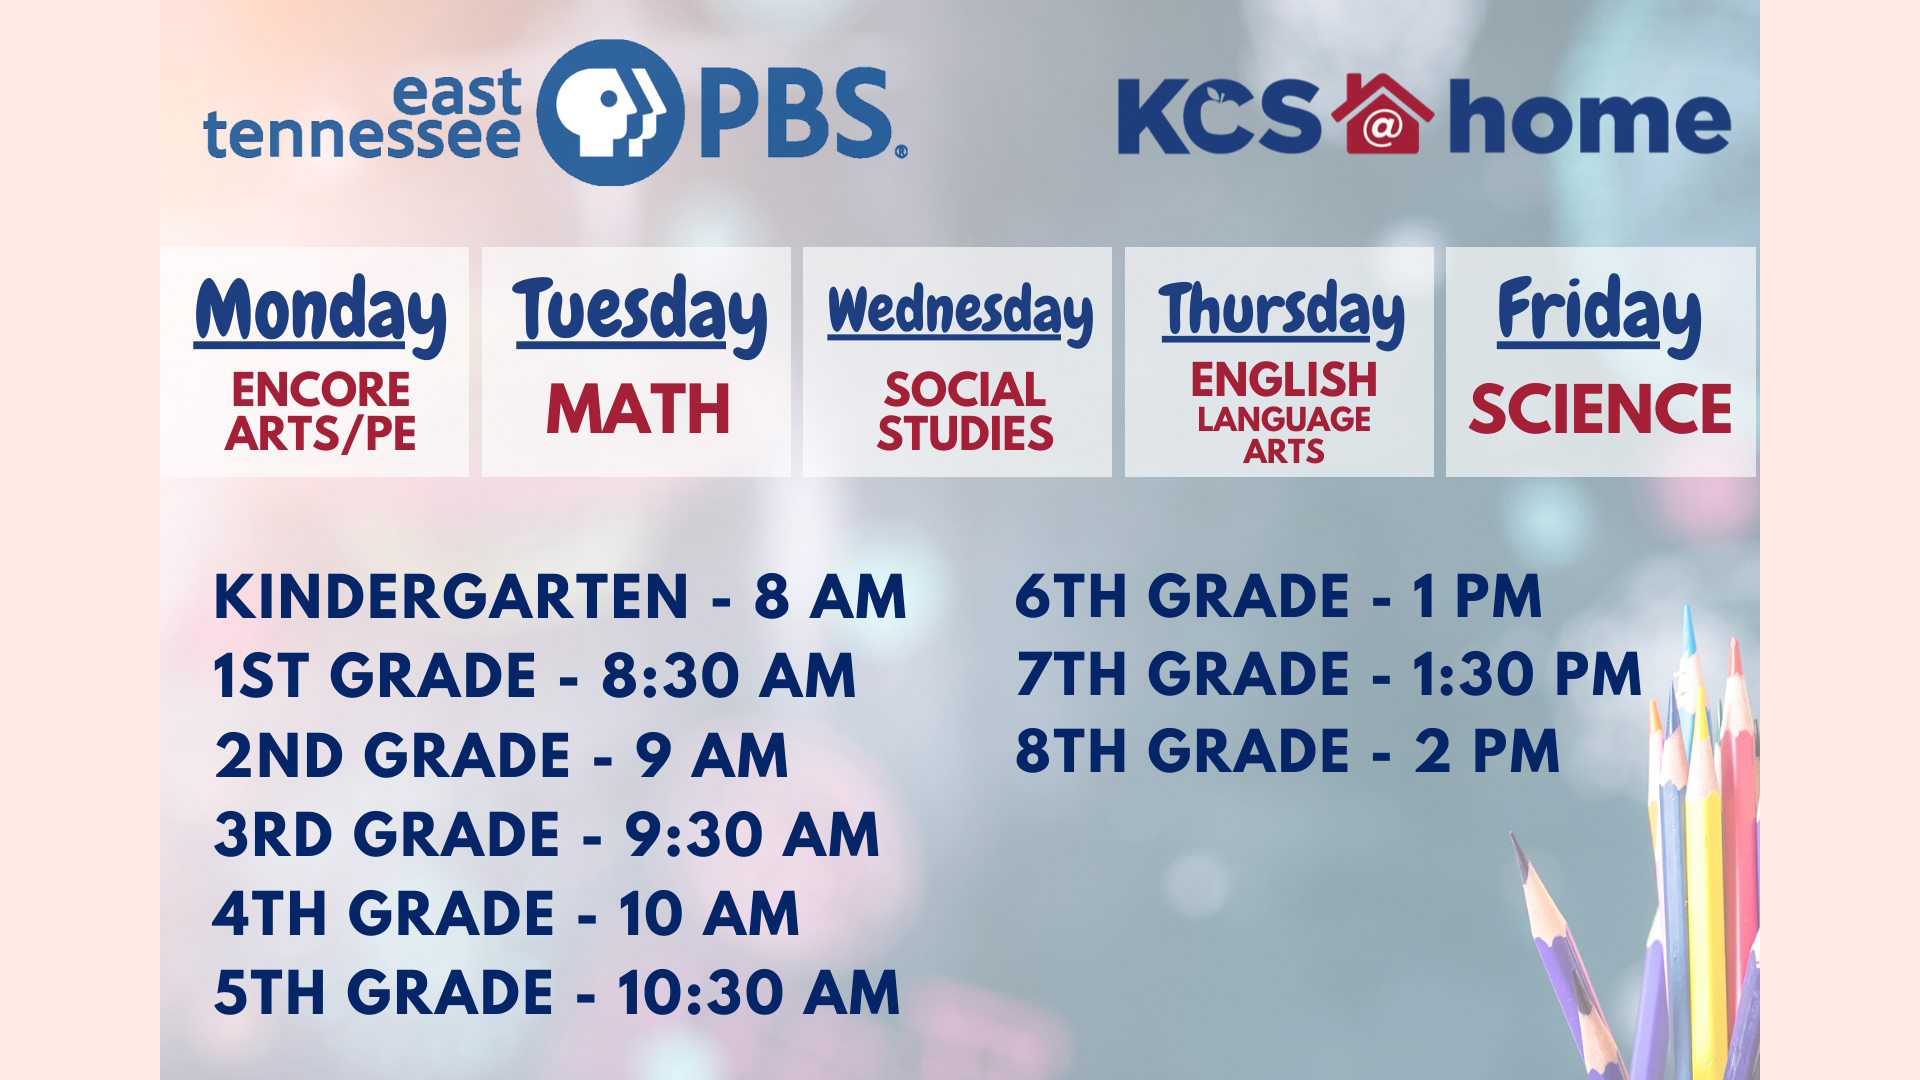 Weekdays from 8 a.m. until 11 a.m., and then again from 1 p.m. until 2:30